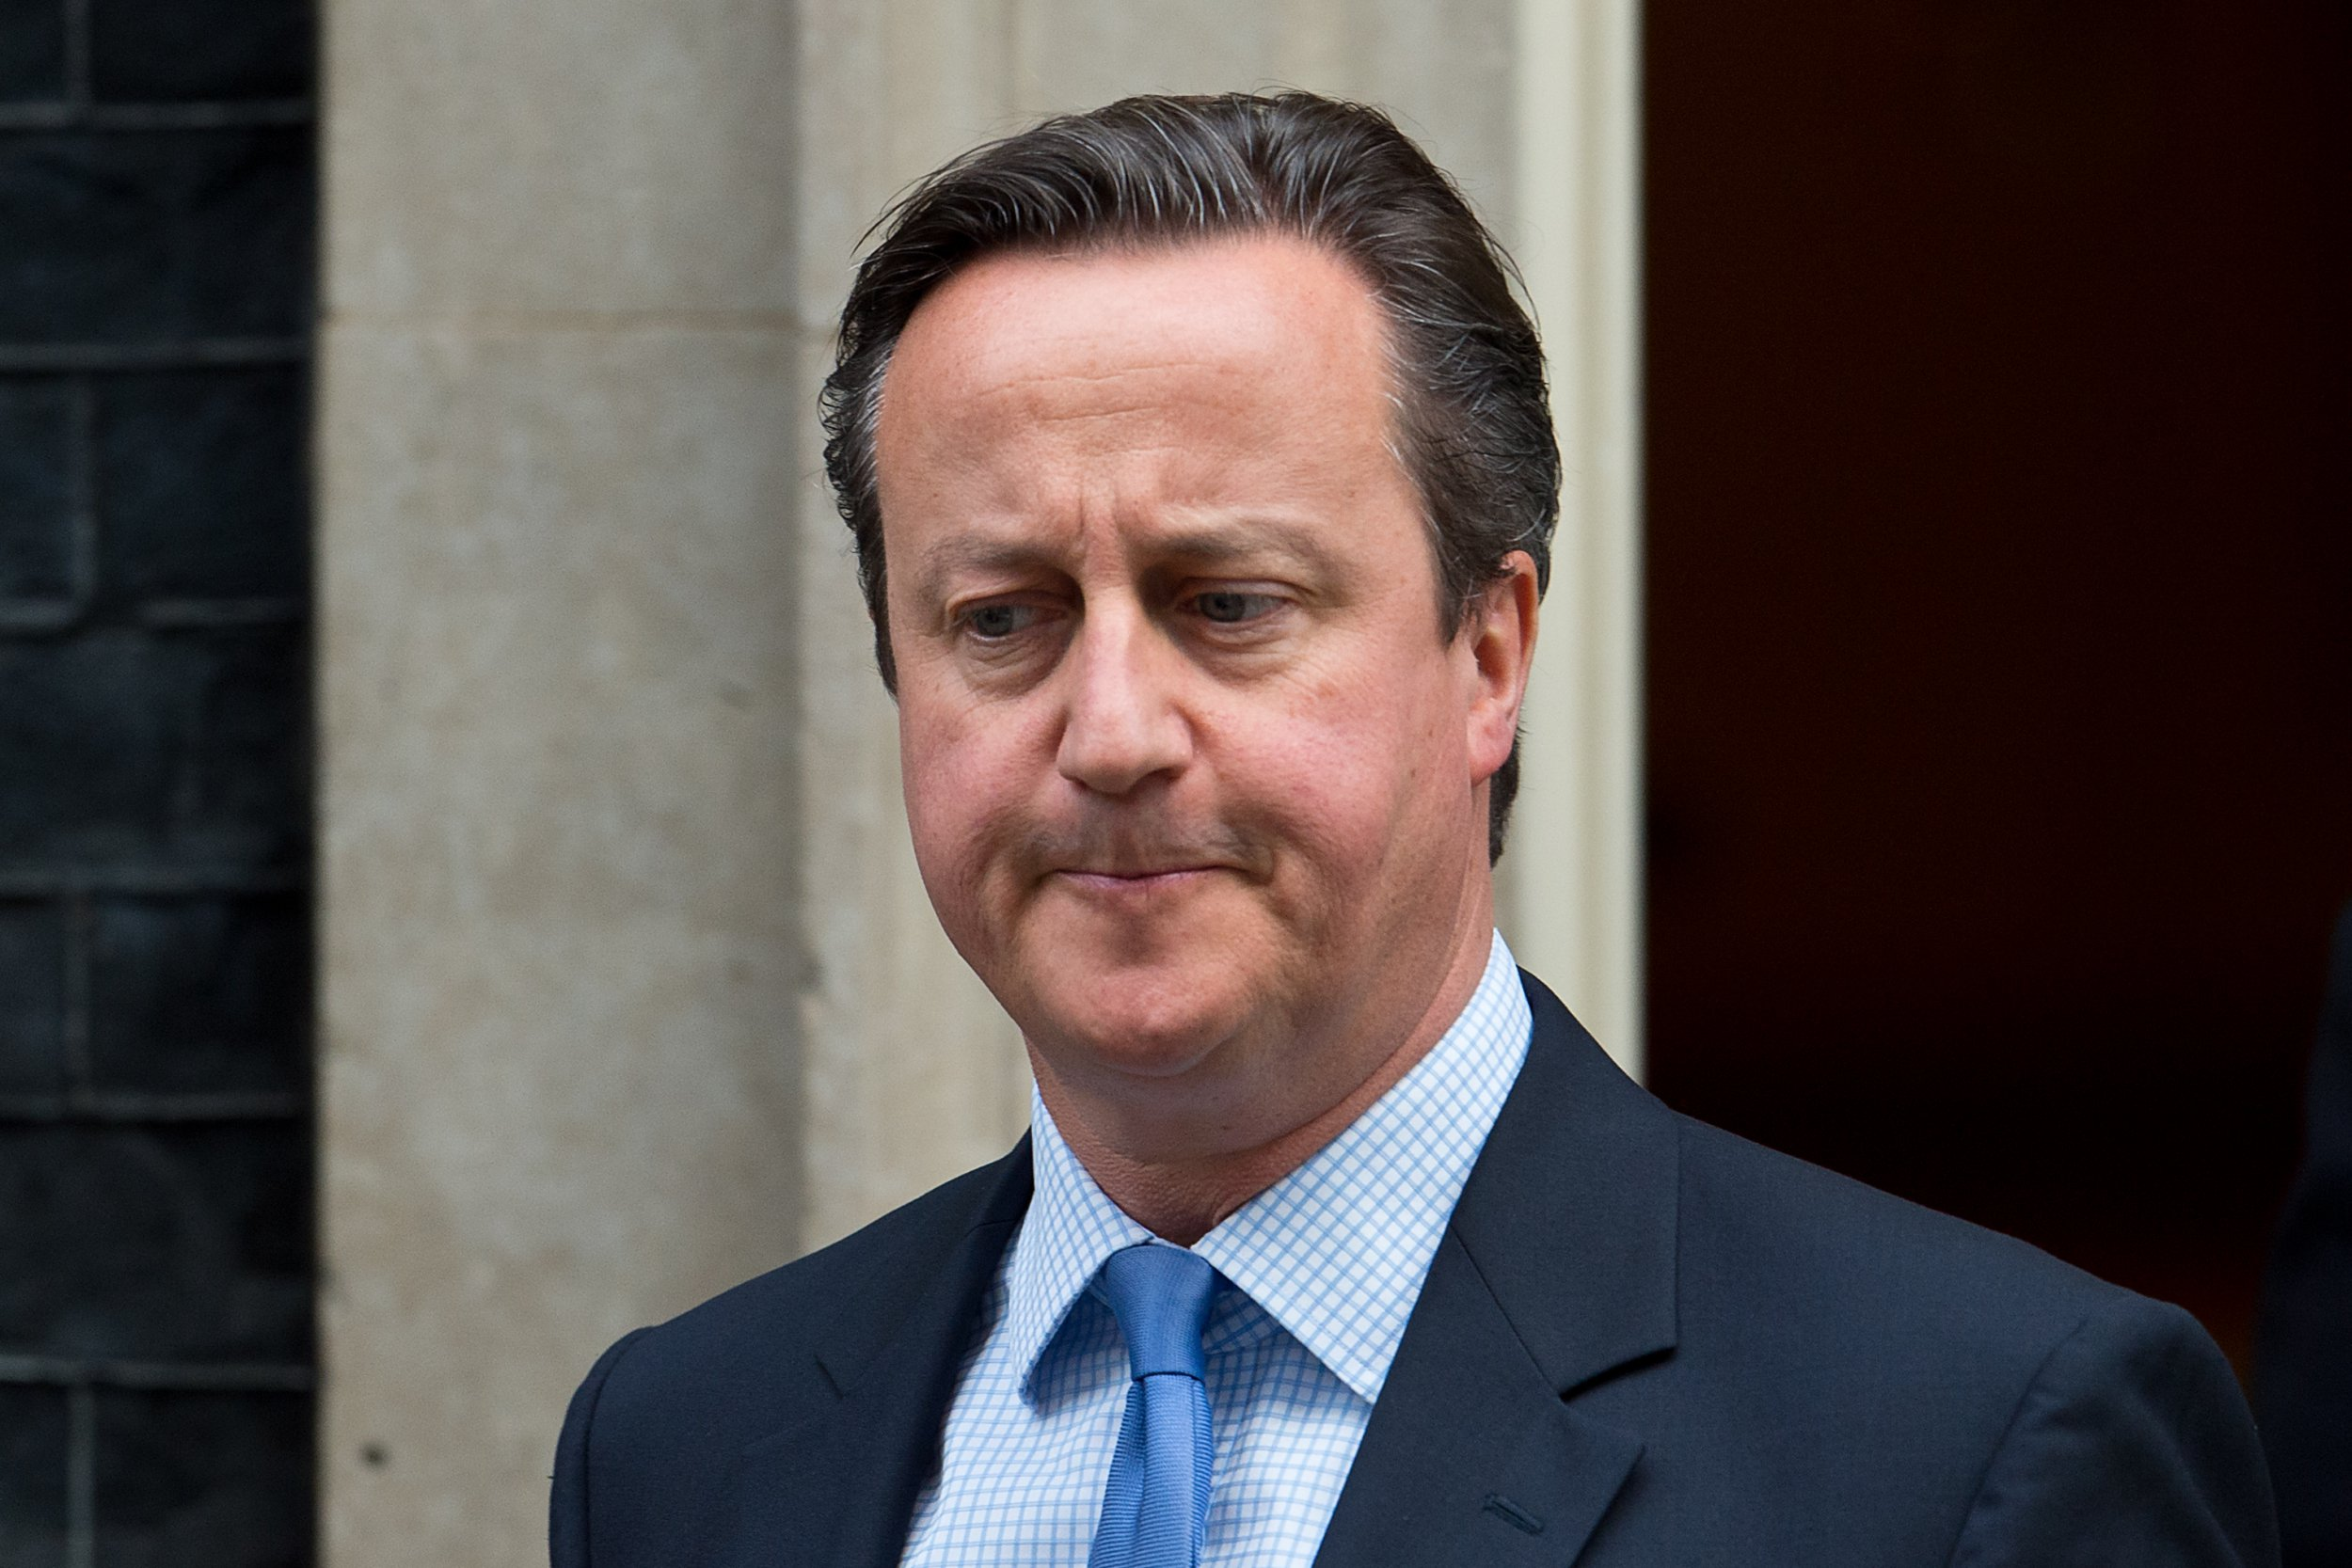 MPs 'resisted' David Cameron's code of conduct safeguarding staff against sexual harassment